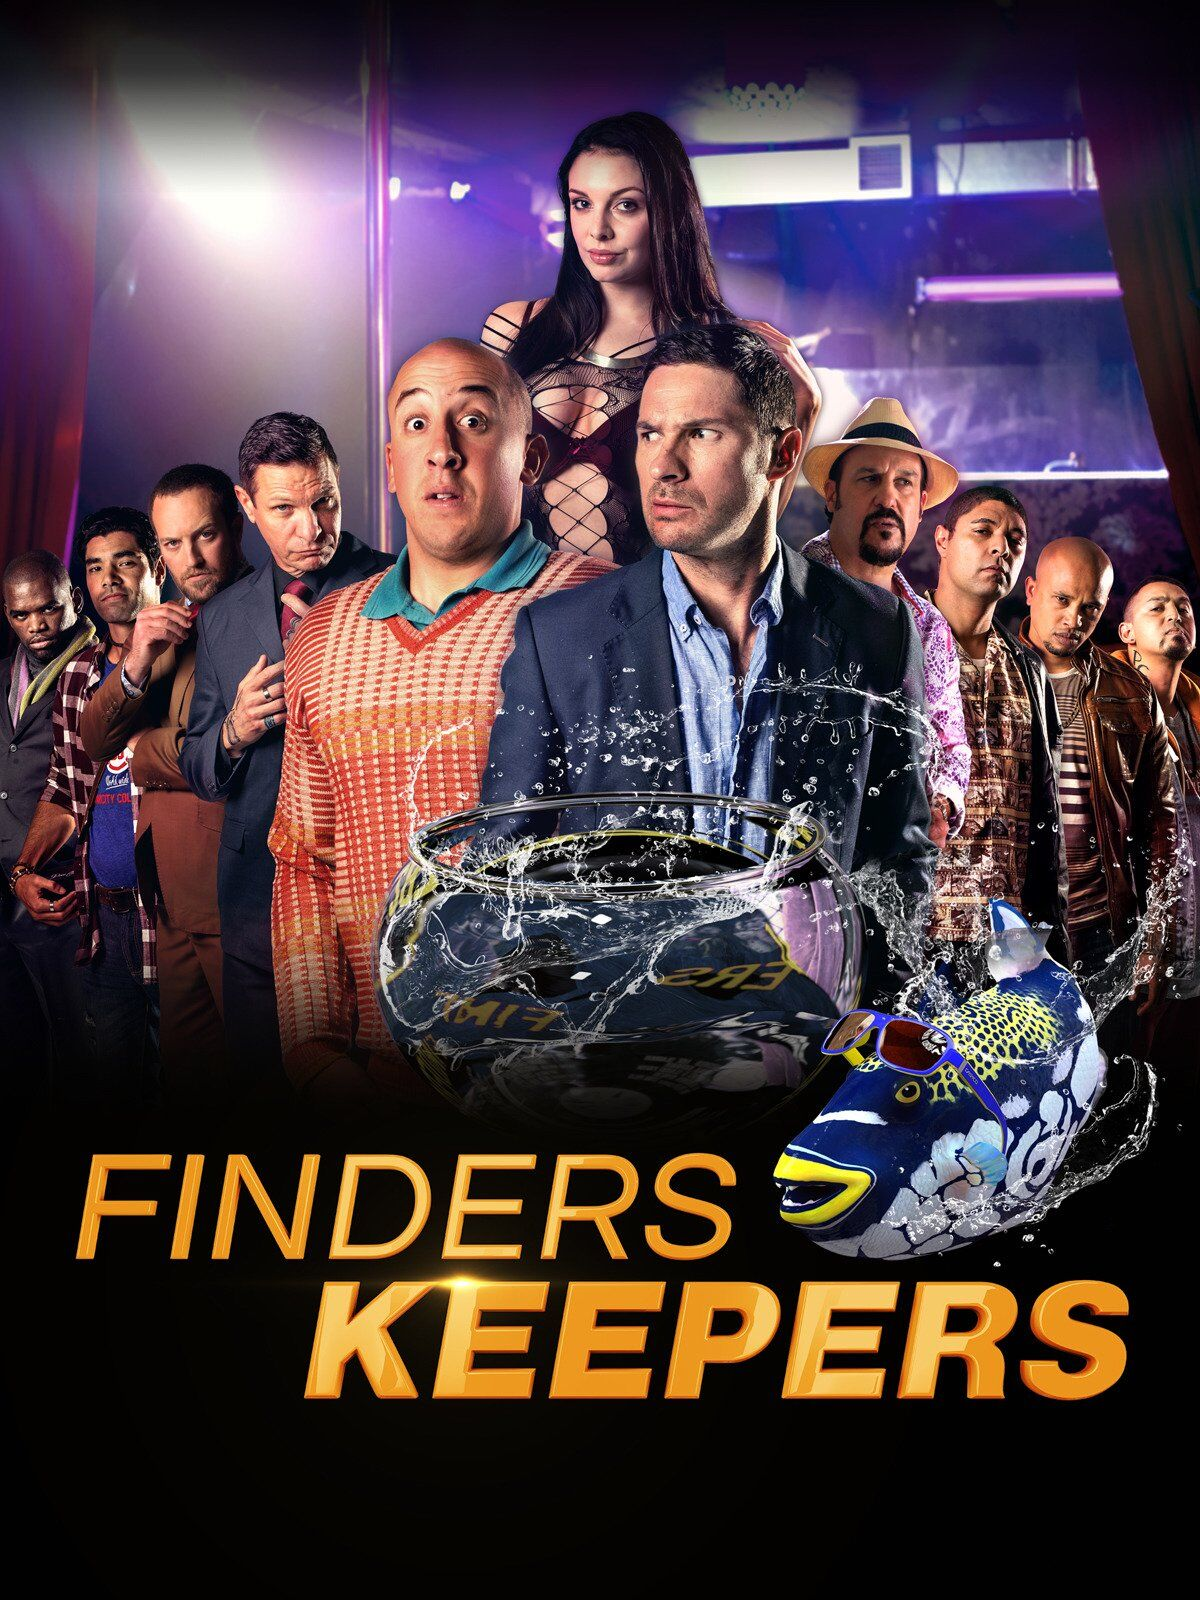 Finders Keepers (2017)